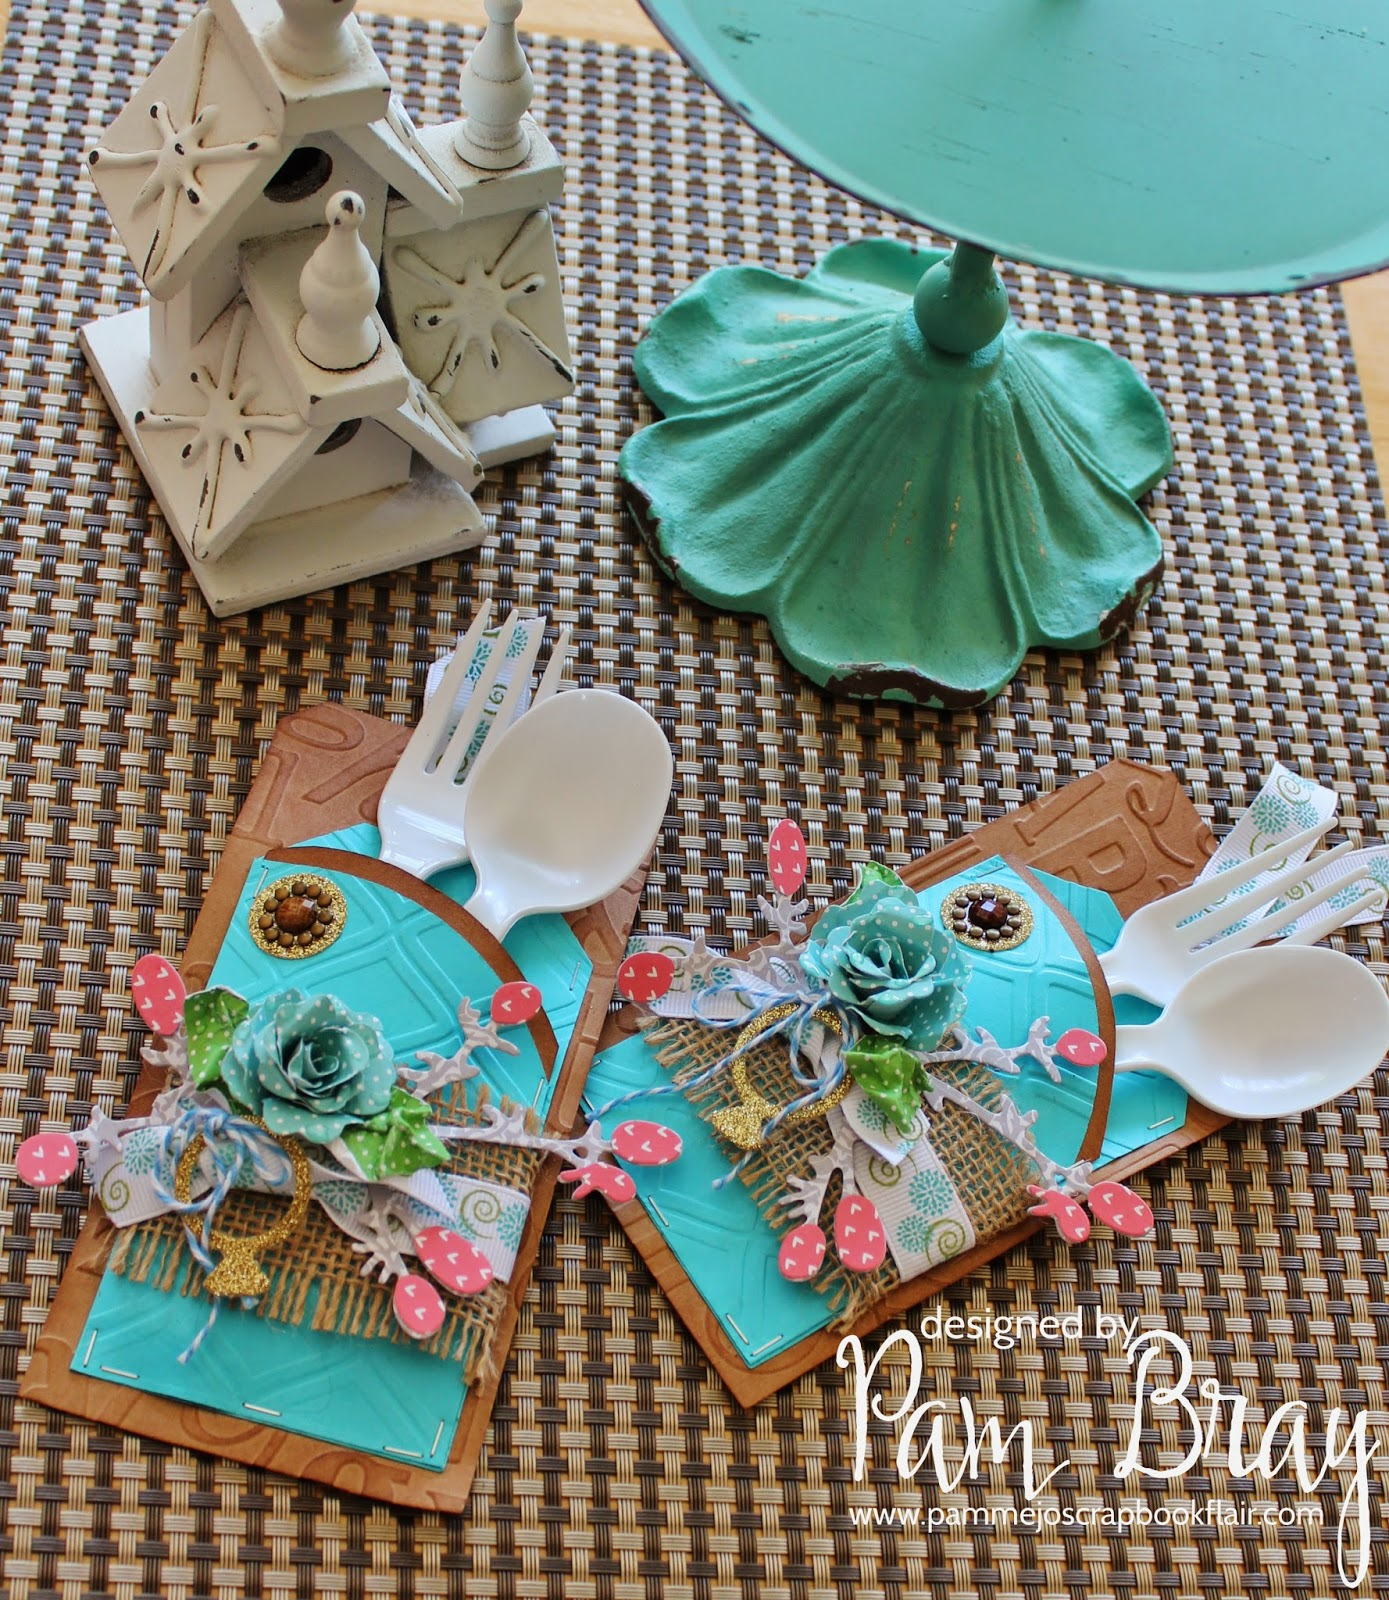 Hi It S Pam Today On The Craftwell Blog Sharing With You A Fun Silverware Holder Idea Using My Cut N Boss Embossing Folders And Along